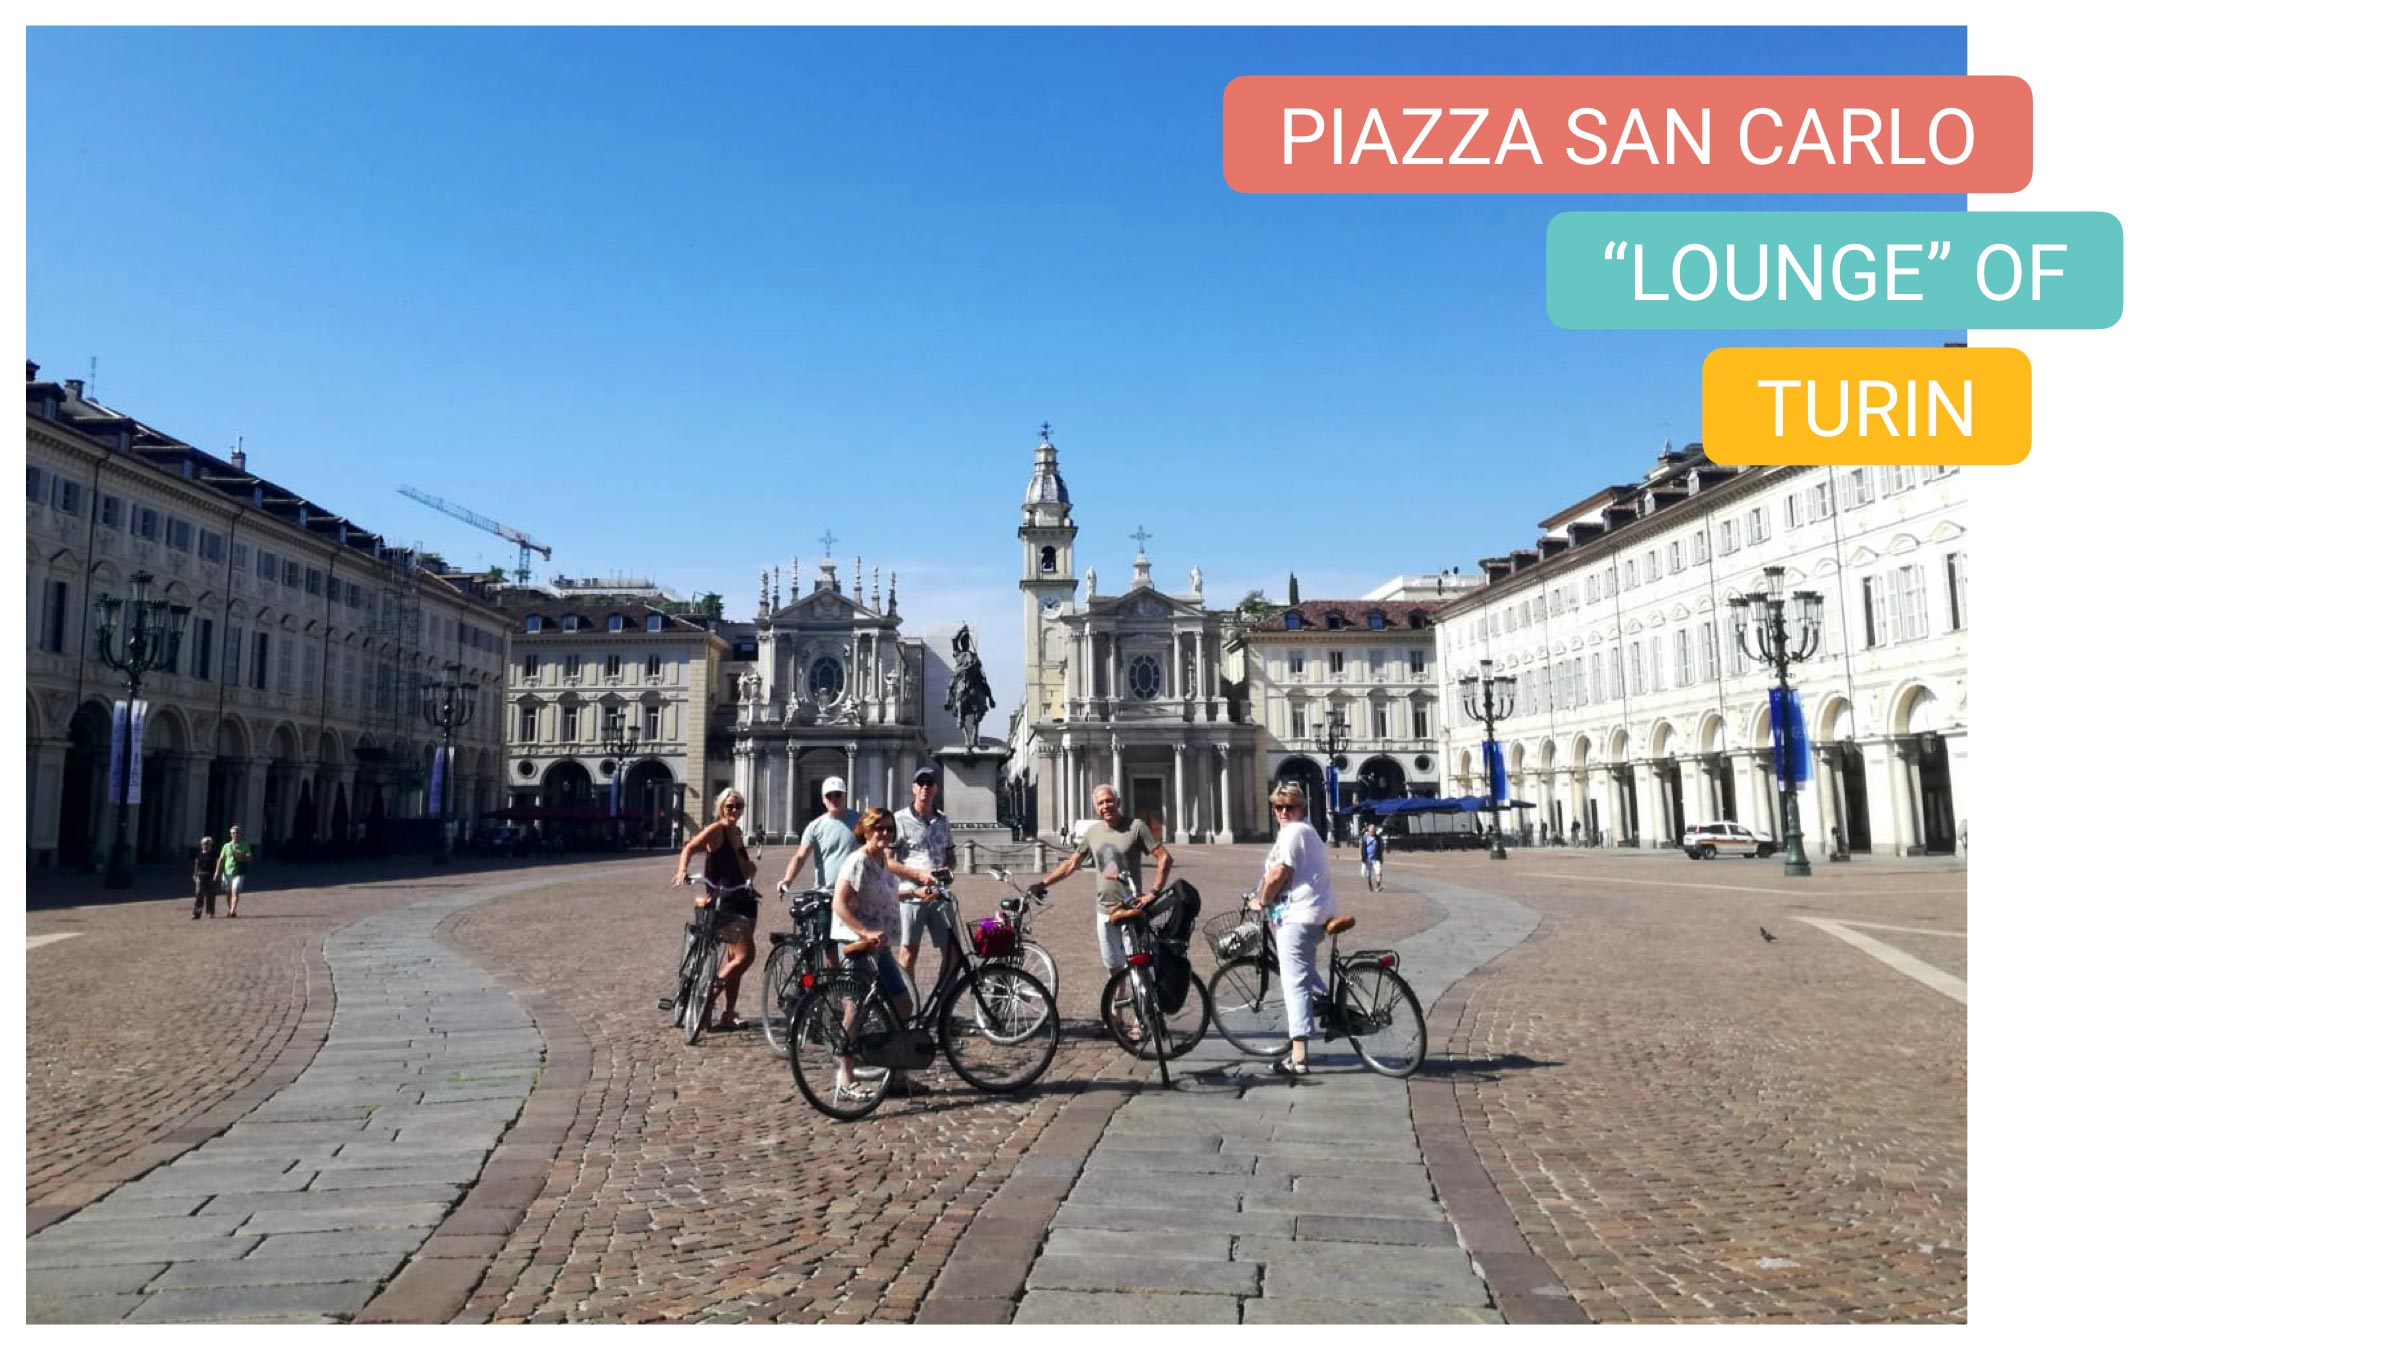 what to see torino piazza san carlo turin city center thing to do 2